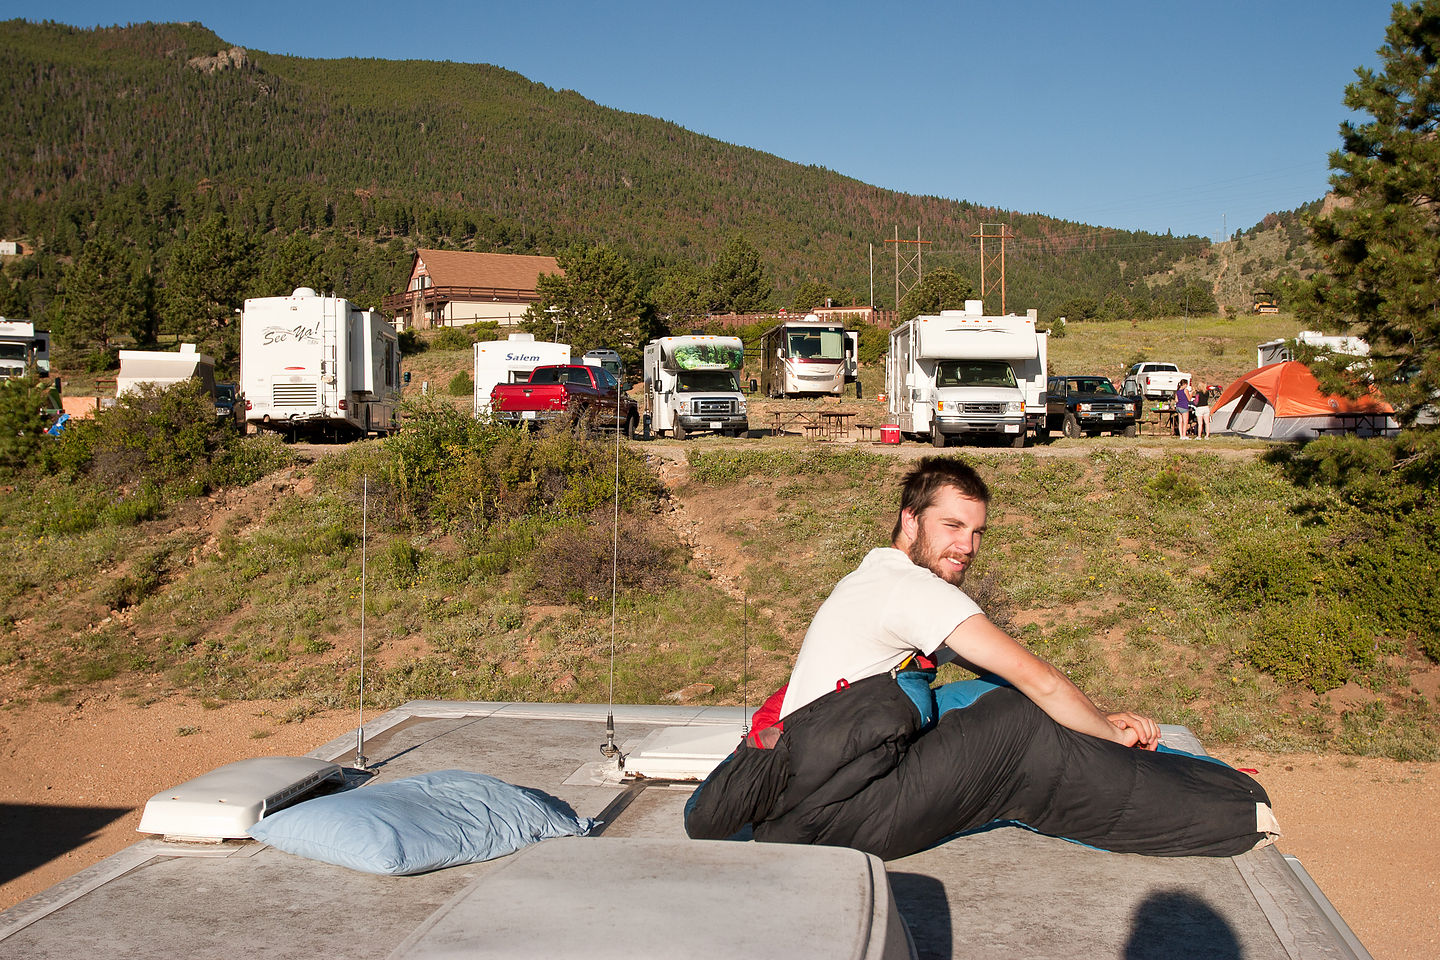 John waking up on roof of RV